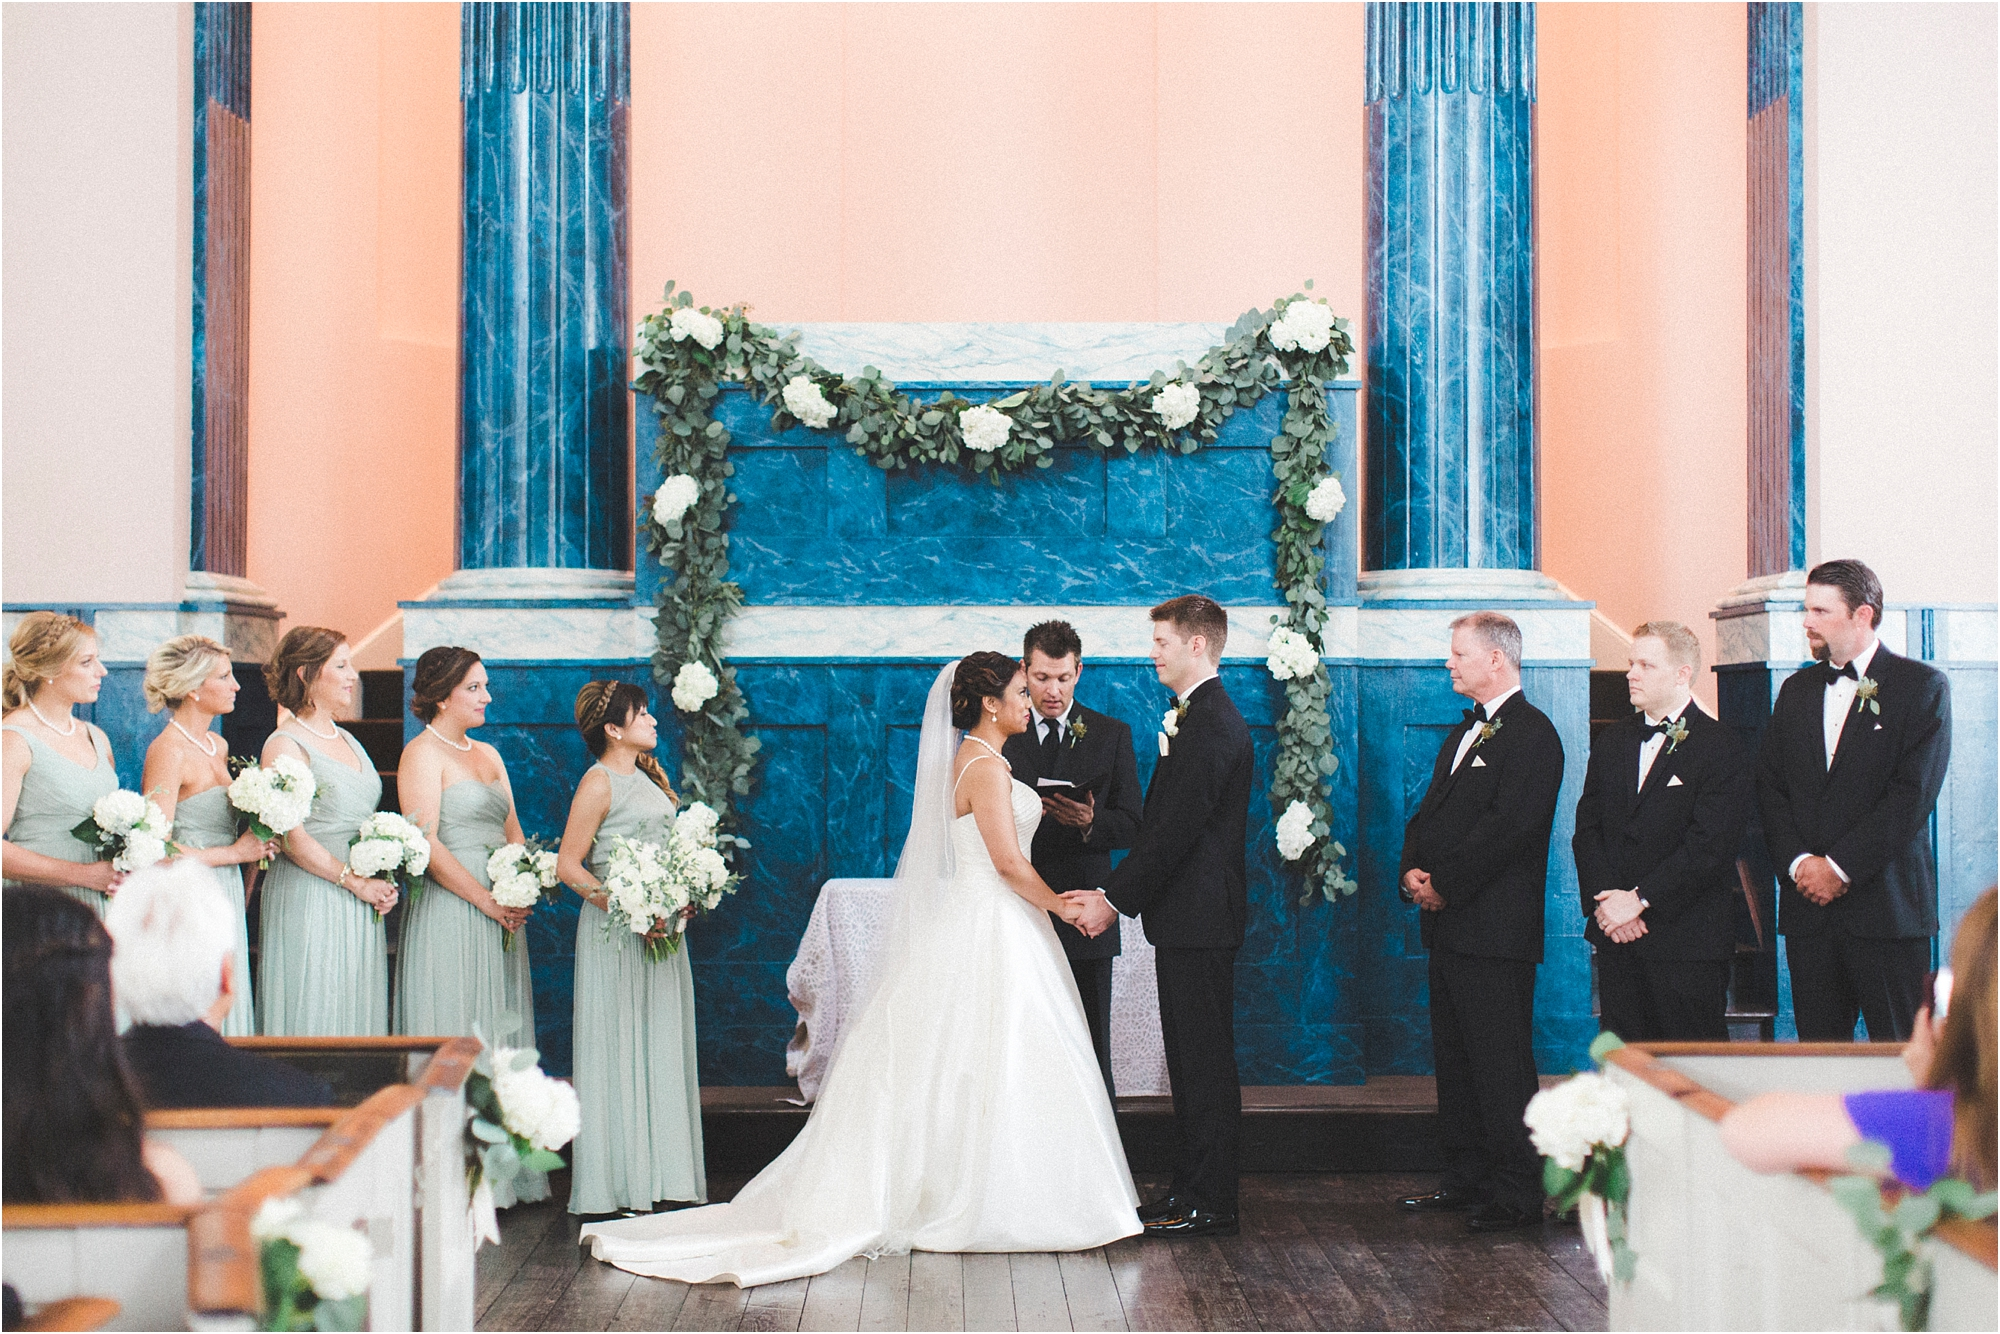 stephanie-yonce-photography-historic-church-virginia-museu-fine-arts-wedding-photos_040a.JPG